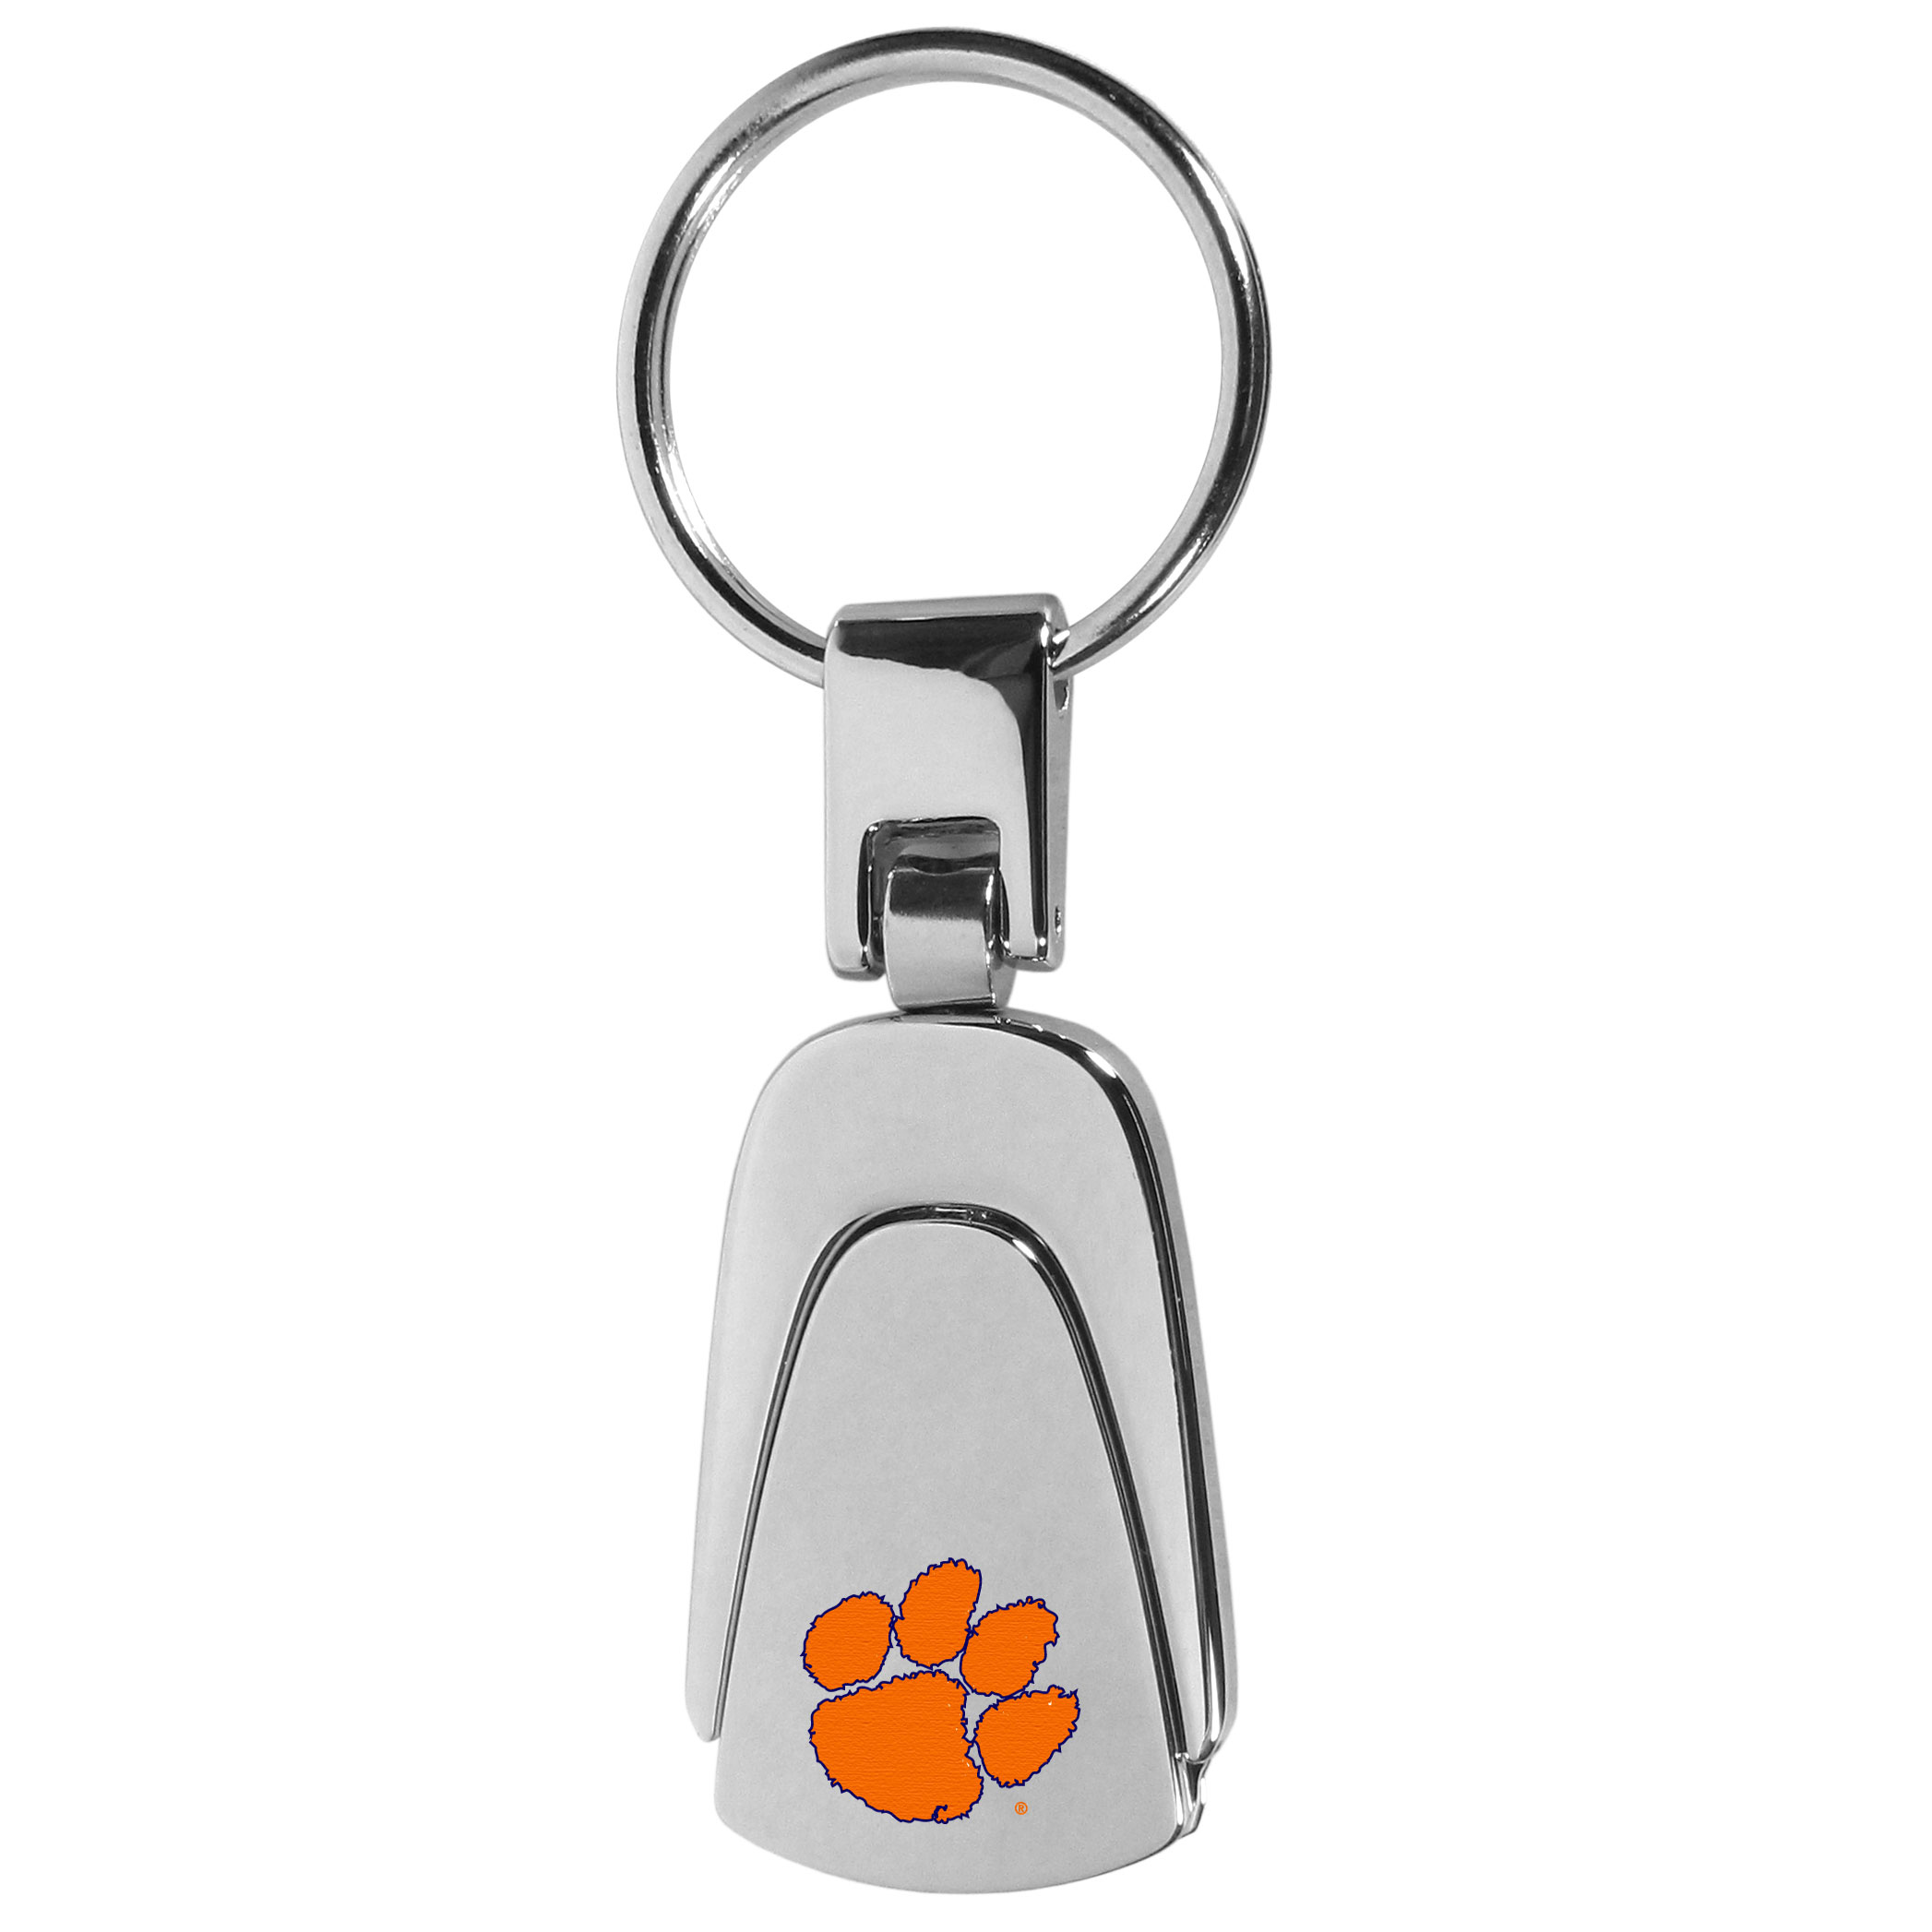 Clemson Tigers Steel Teardop Key Chain - Our Clemson Tigers stainless steel, teardrop key chain is a high-quality key chain with classic style. The key chain a high-polish finish with a full color team logo. A standard split ring for your home and auto keys.